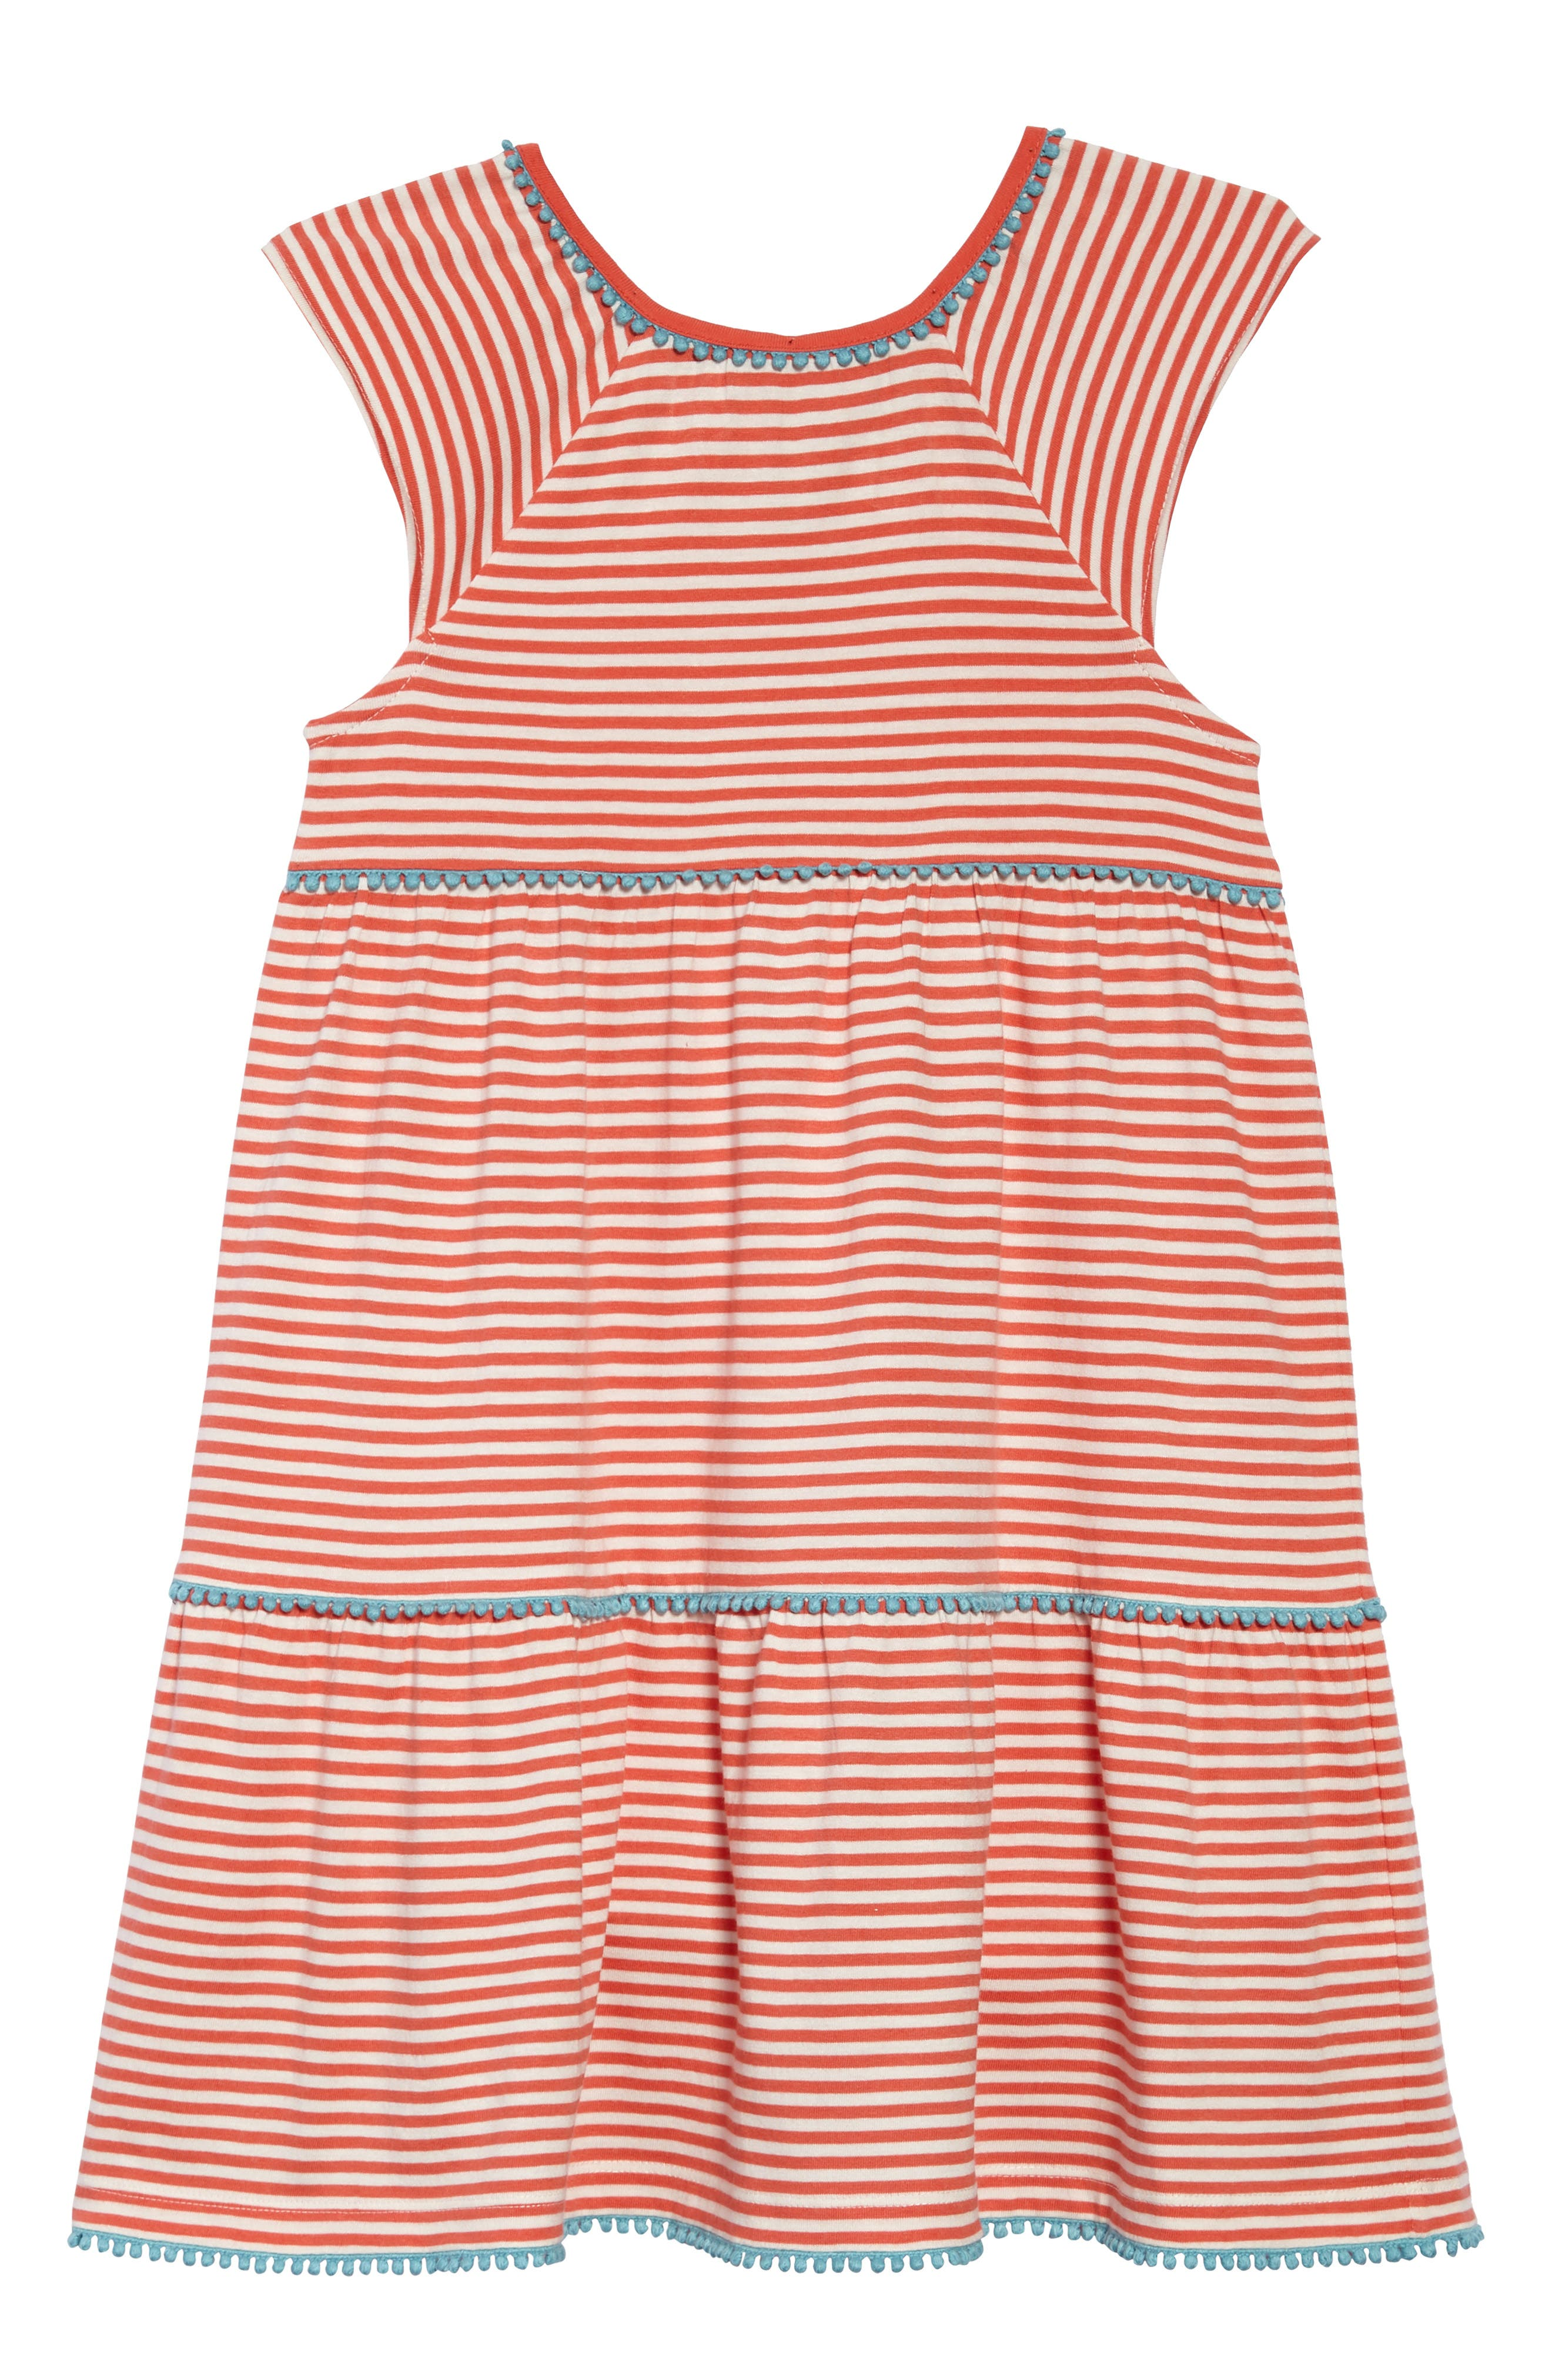 Tiered Jersey Frill Dress,                         Main,                         color, Melon Crush Orange/ Ivory Ora